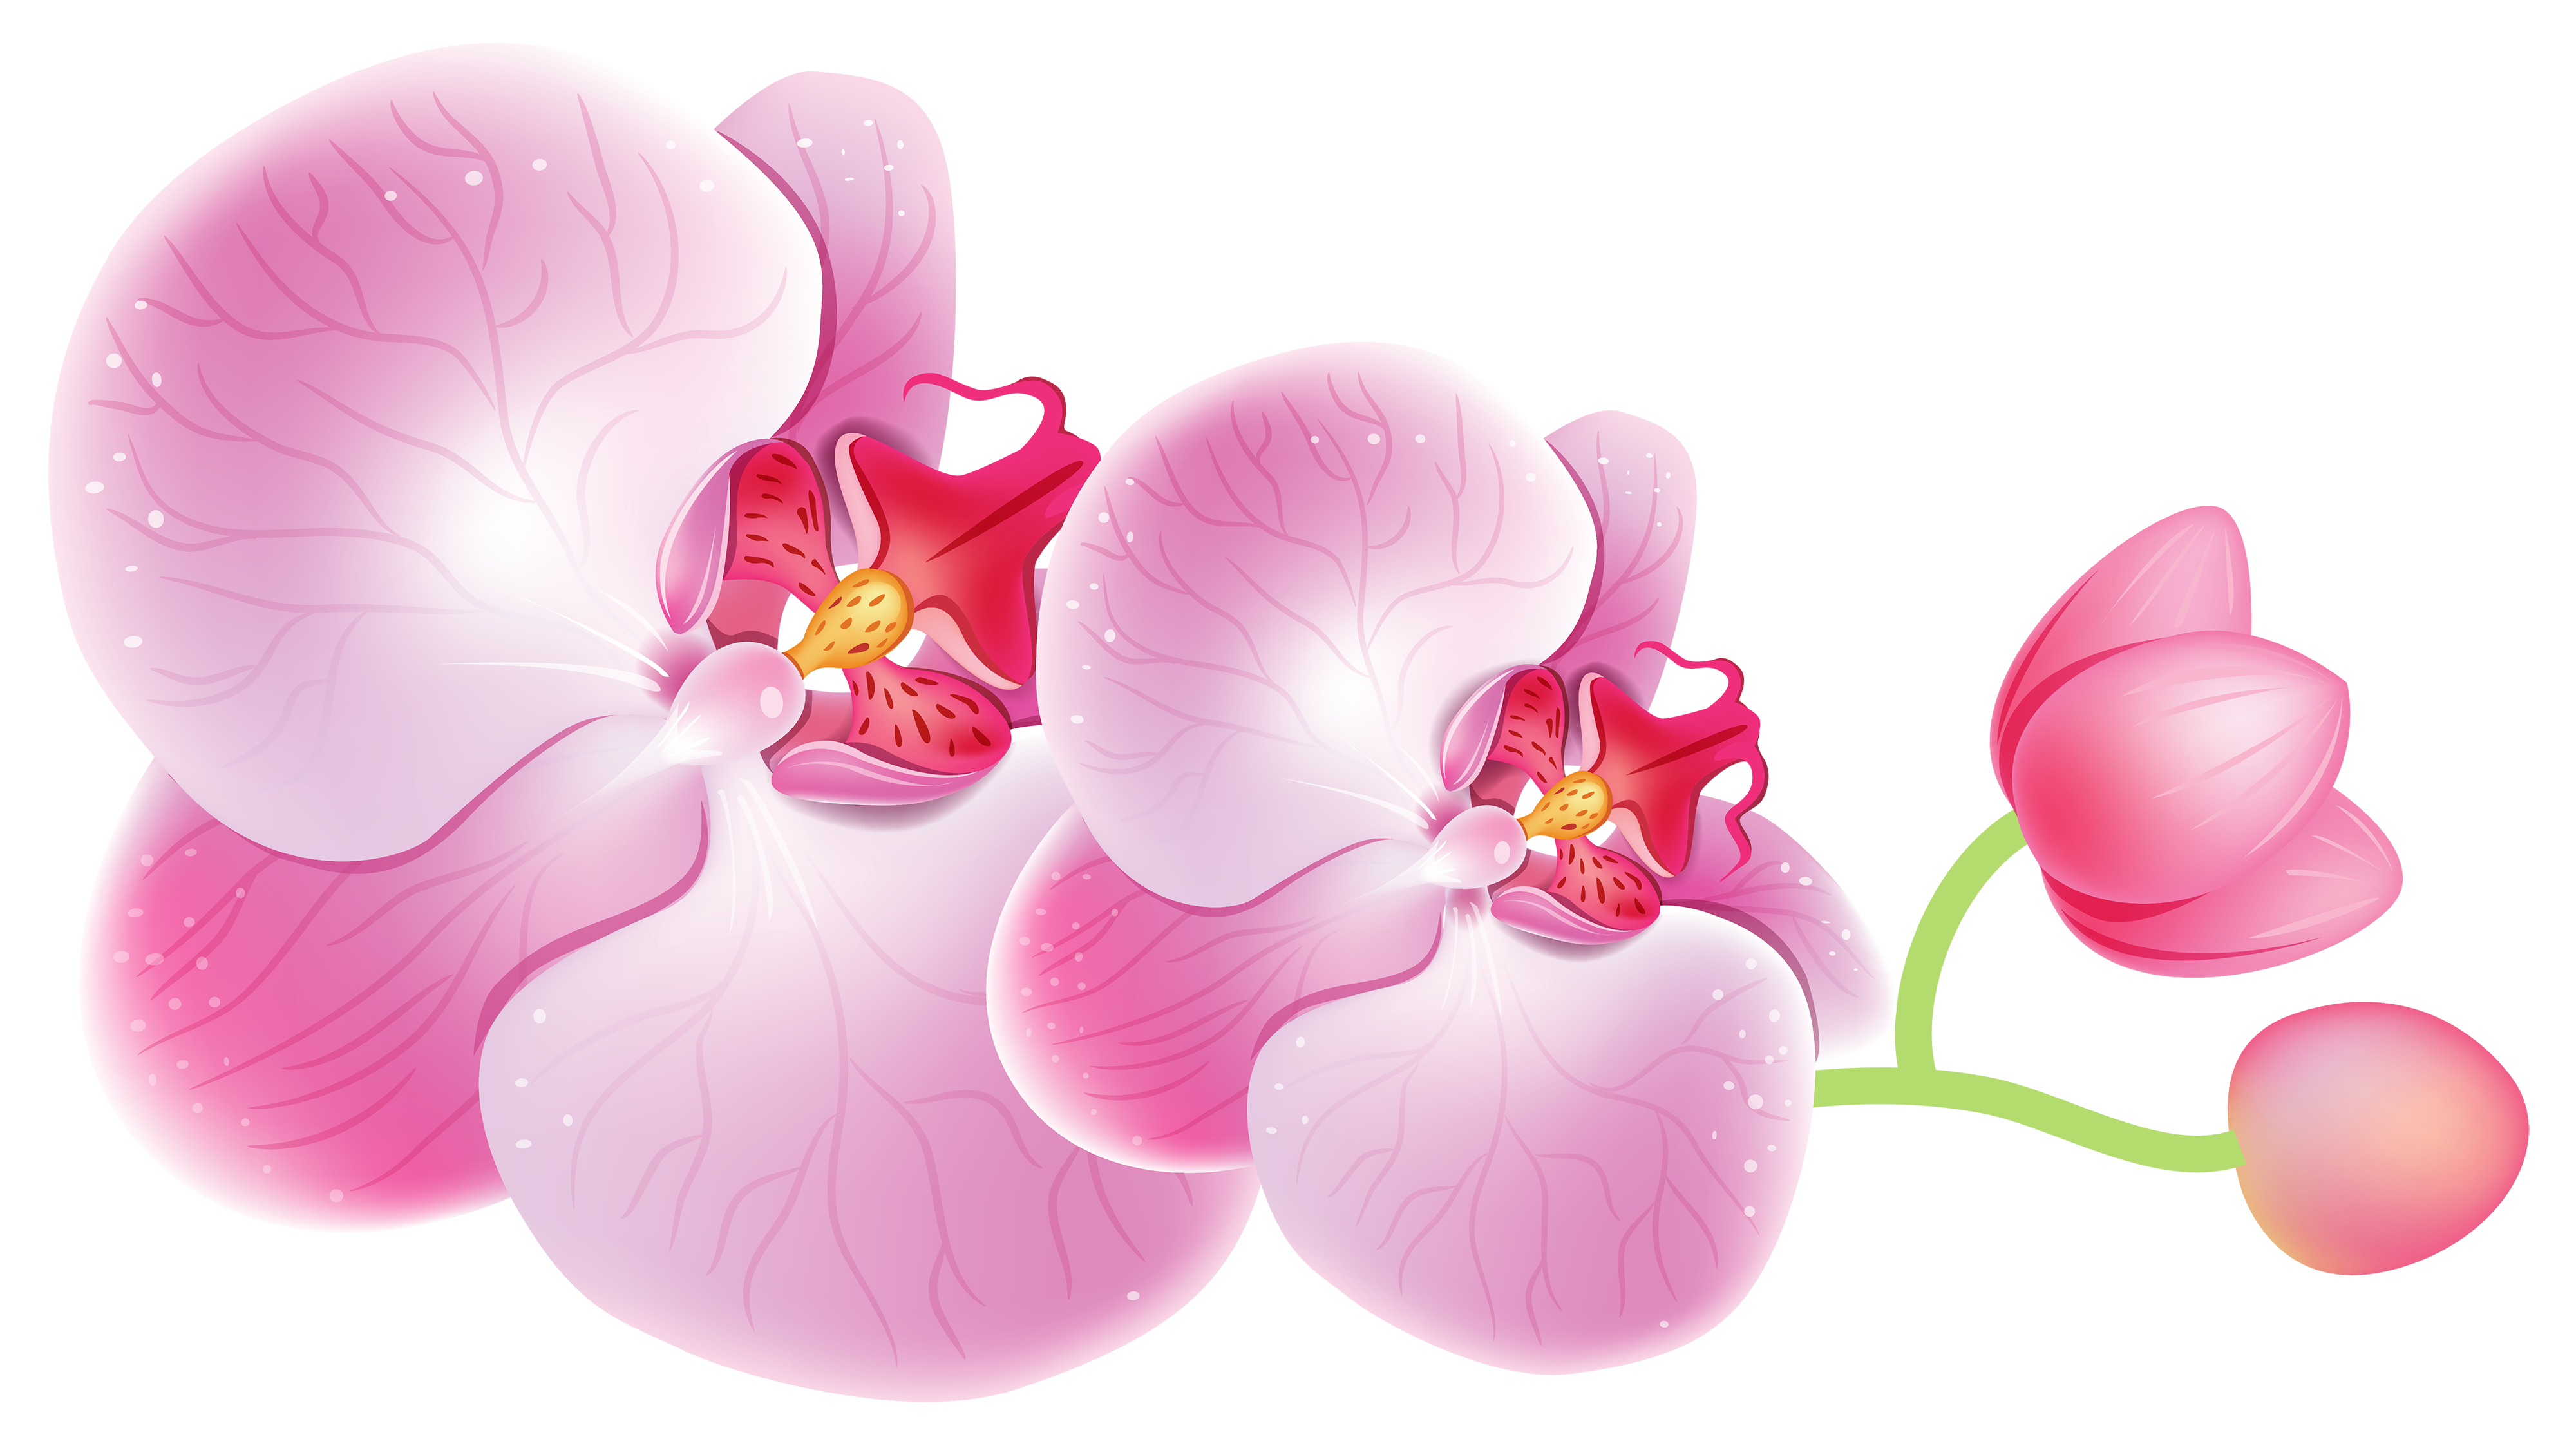 Orchid clipart orchid flower Clipart Orchids Orchid's Orchids Collection